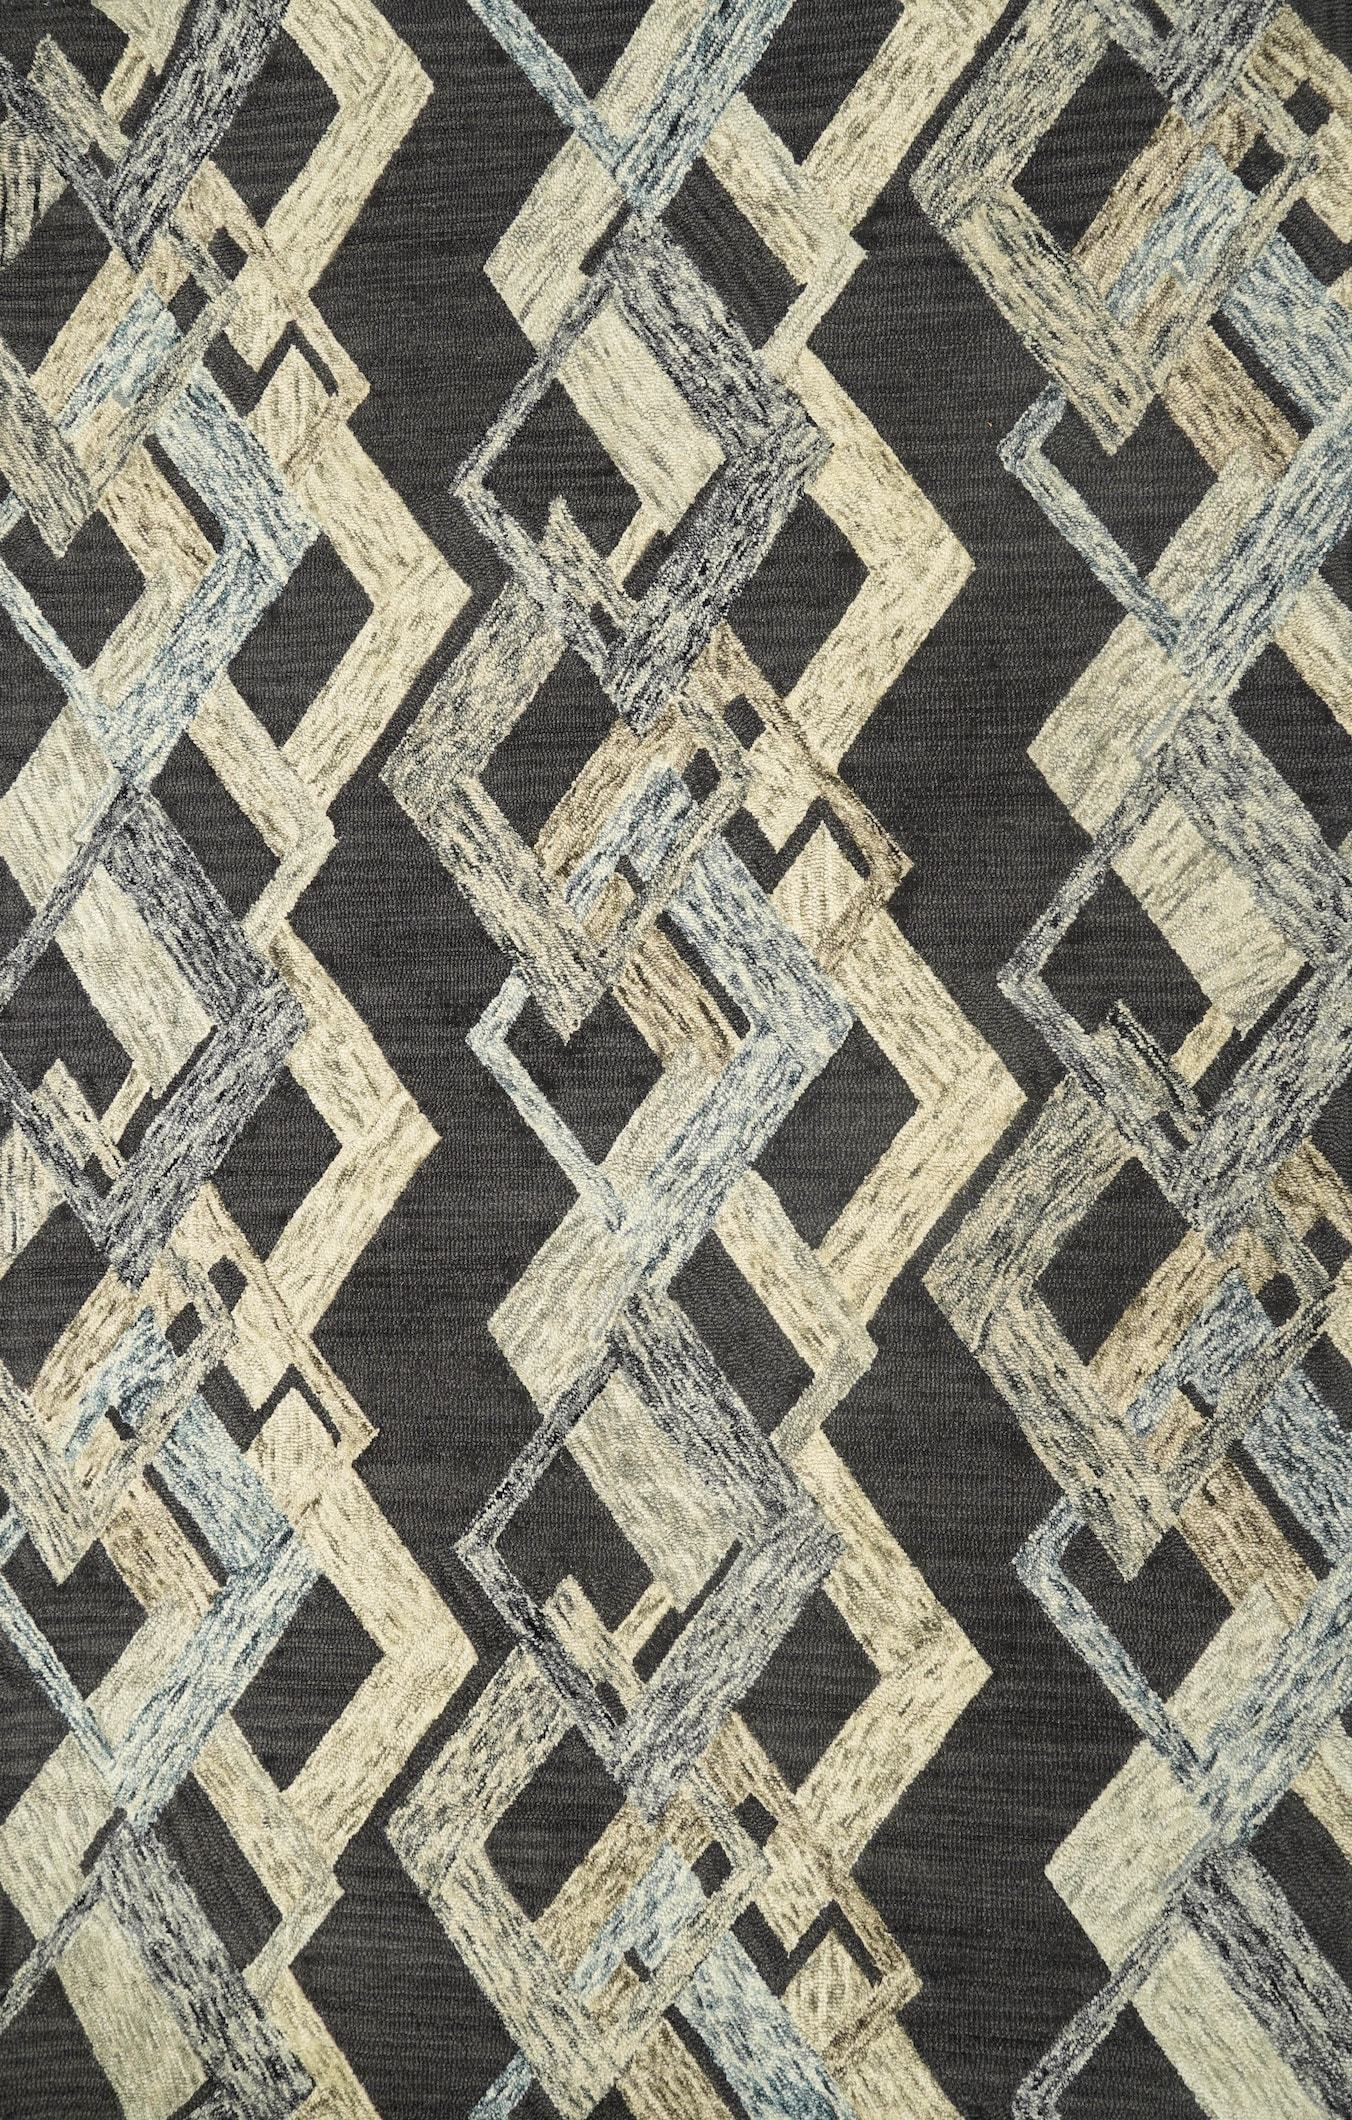 Trellis Hand Tufted Rug by House of Rugs - Home Artisan